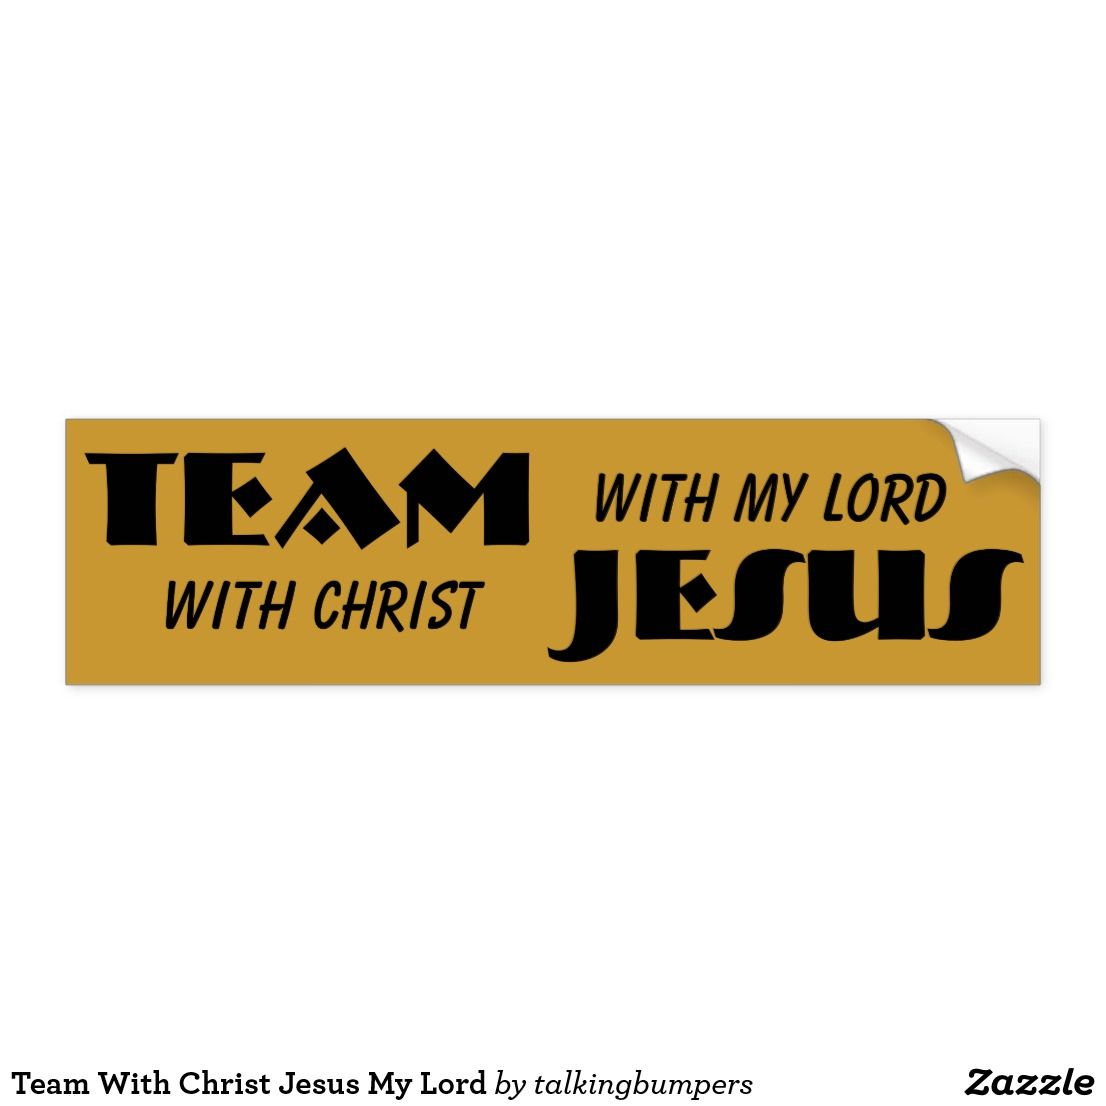 Team with christ jesus my lord bumper sticker get on the right team show your love for our savior